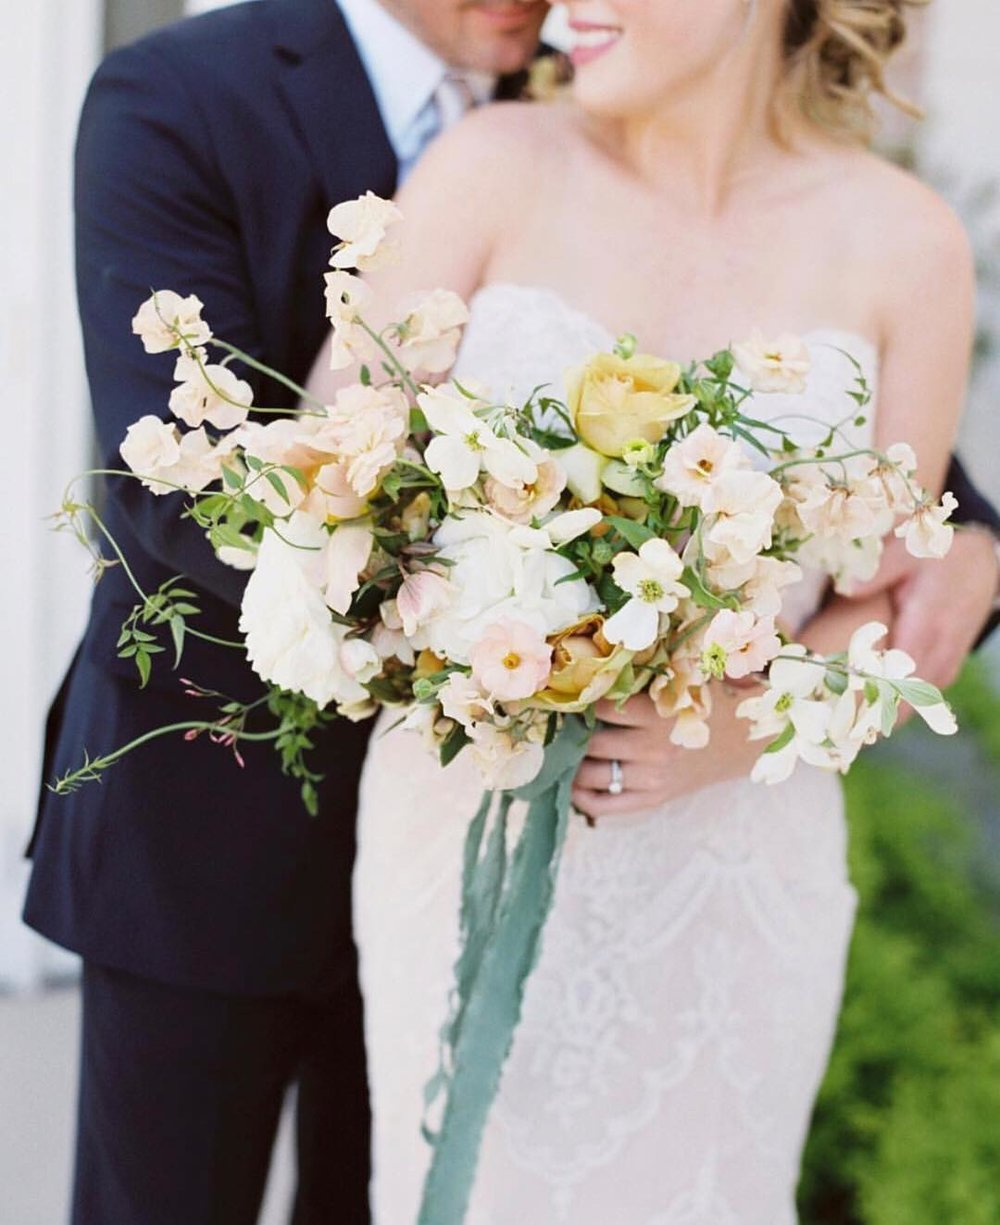 ivory-and-beau-bridal-boutique-how-to-save-money-when-planning-a-wedding-wedding-budget-advice-wedding-financing-3.jpg